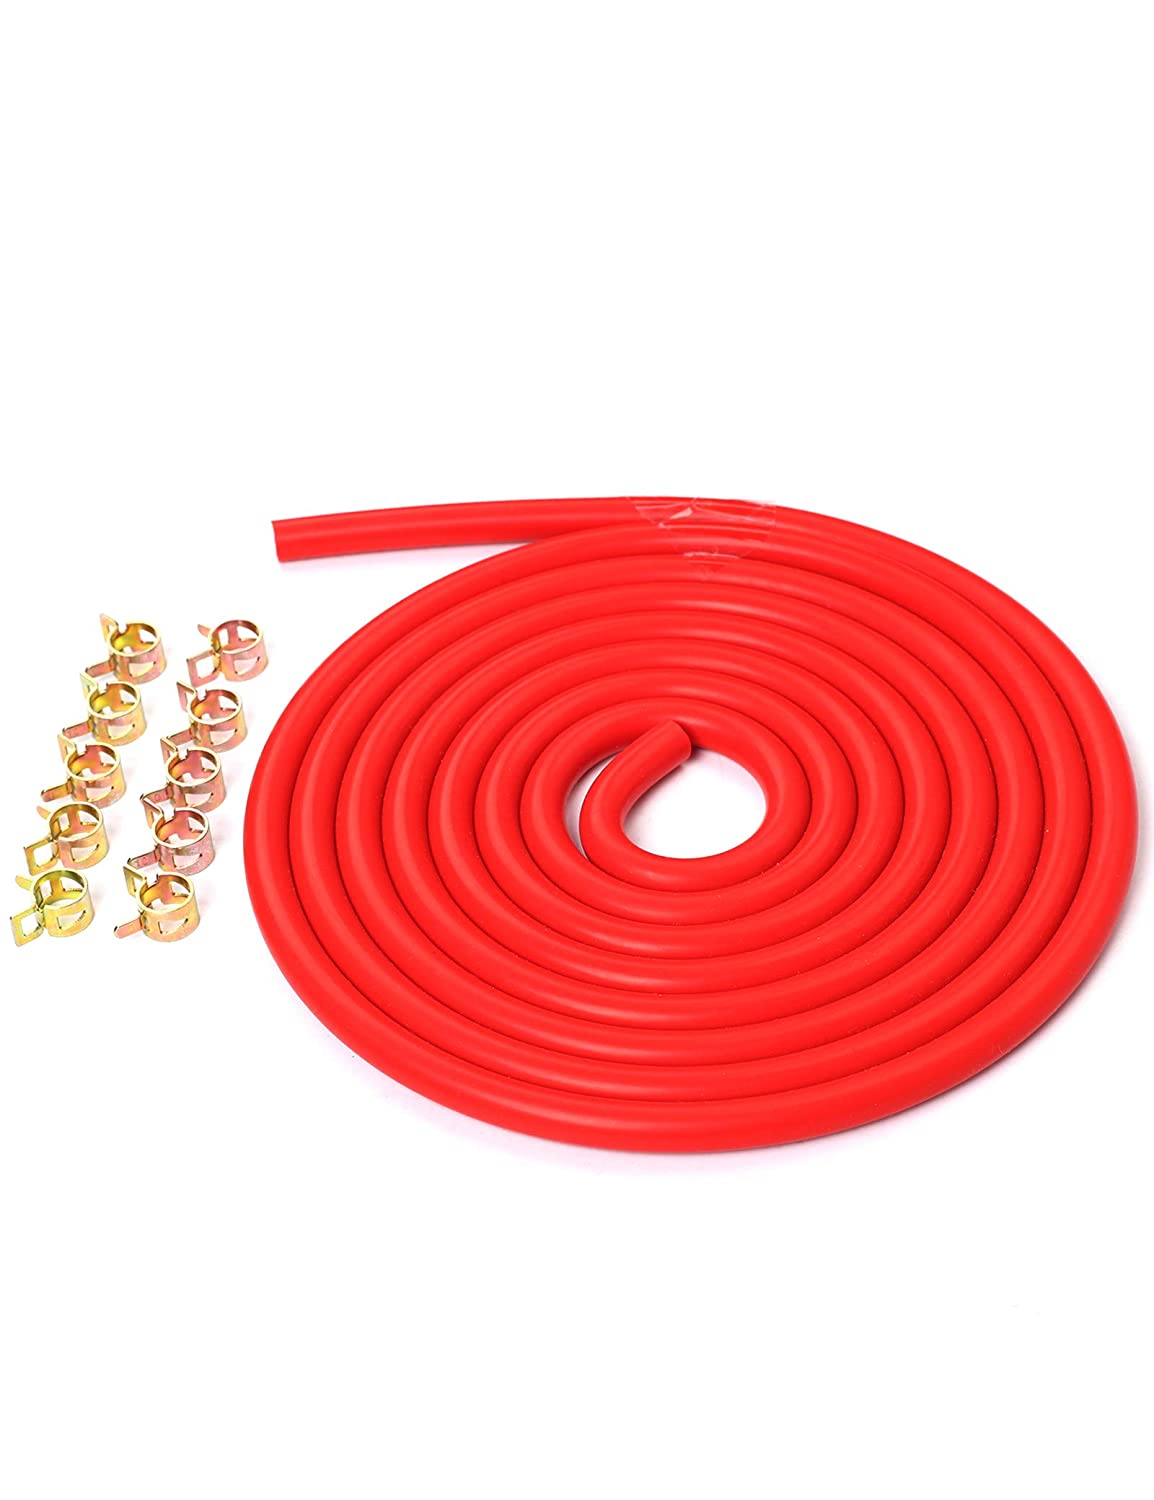 10 Feet Red 3/16'/5mm Silicone Vacuum Hose + 10 PCS 10mm Spring Clip Clamps Kit blackhorseracing